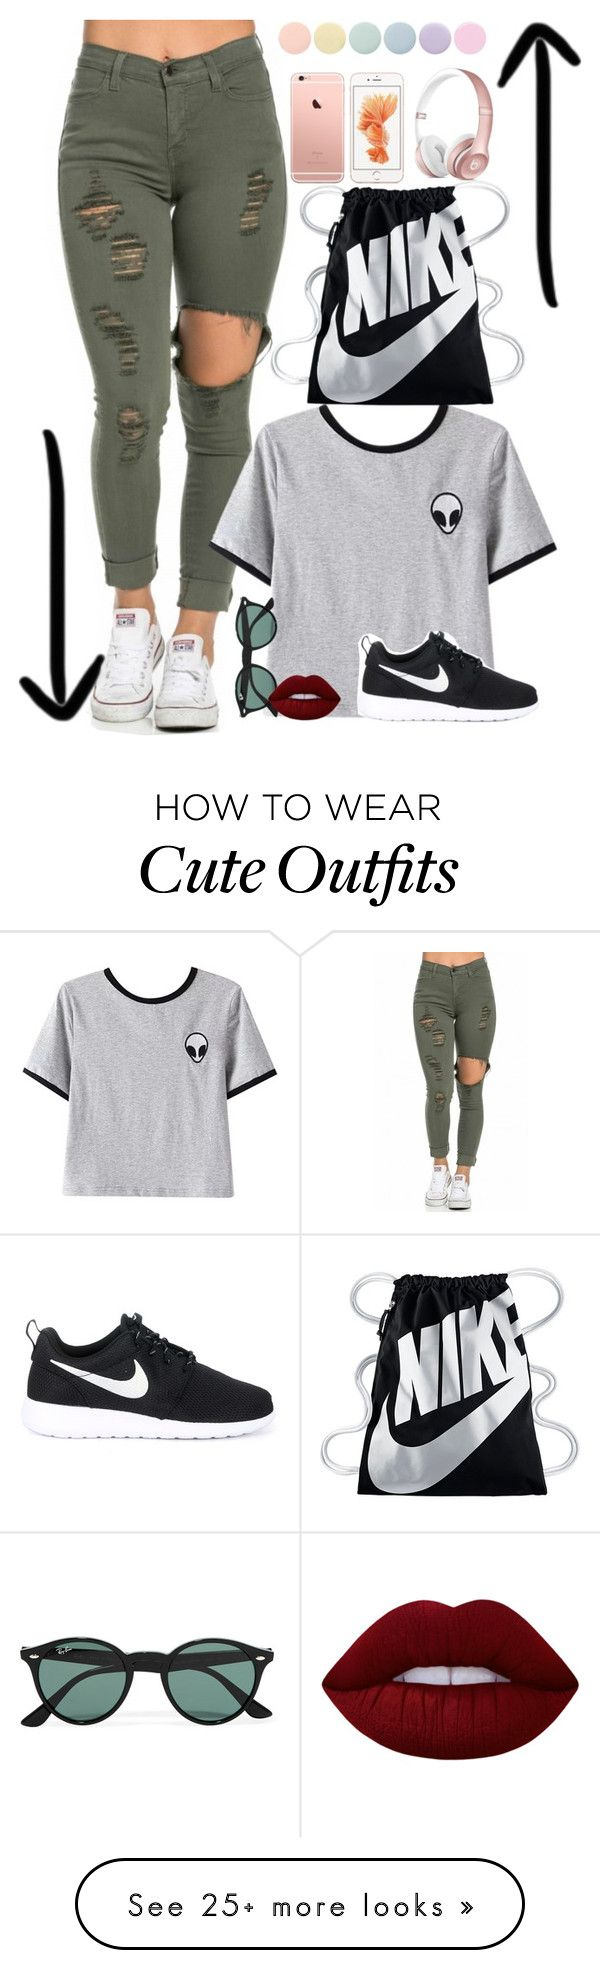 """Cute summer Outfit"" by awesomepenguin18 on Polyvore featuring Chicnova Fashion, NIKE, Ray-Ban, Deborah Lippmann and Lime Crime"